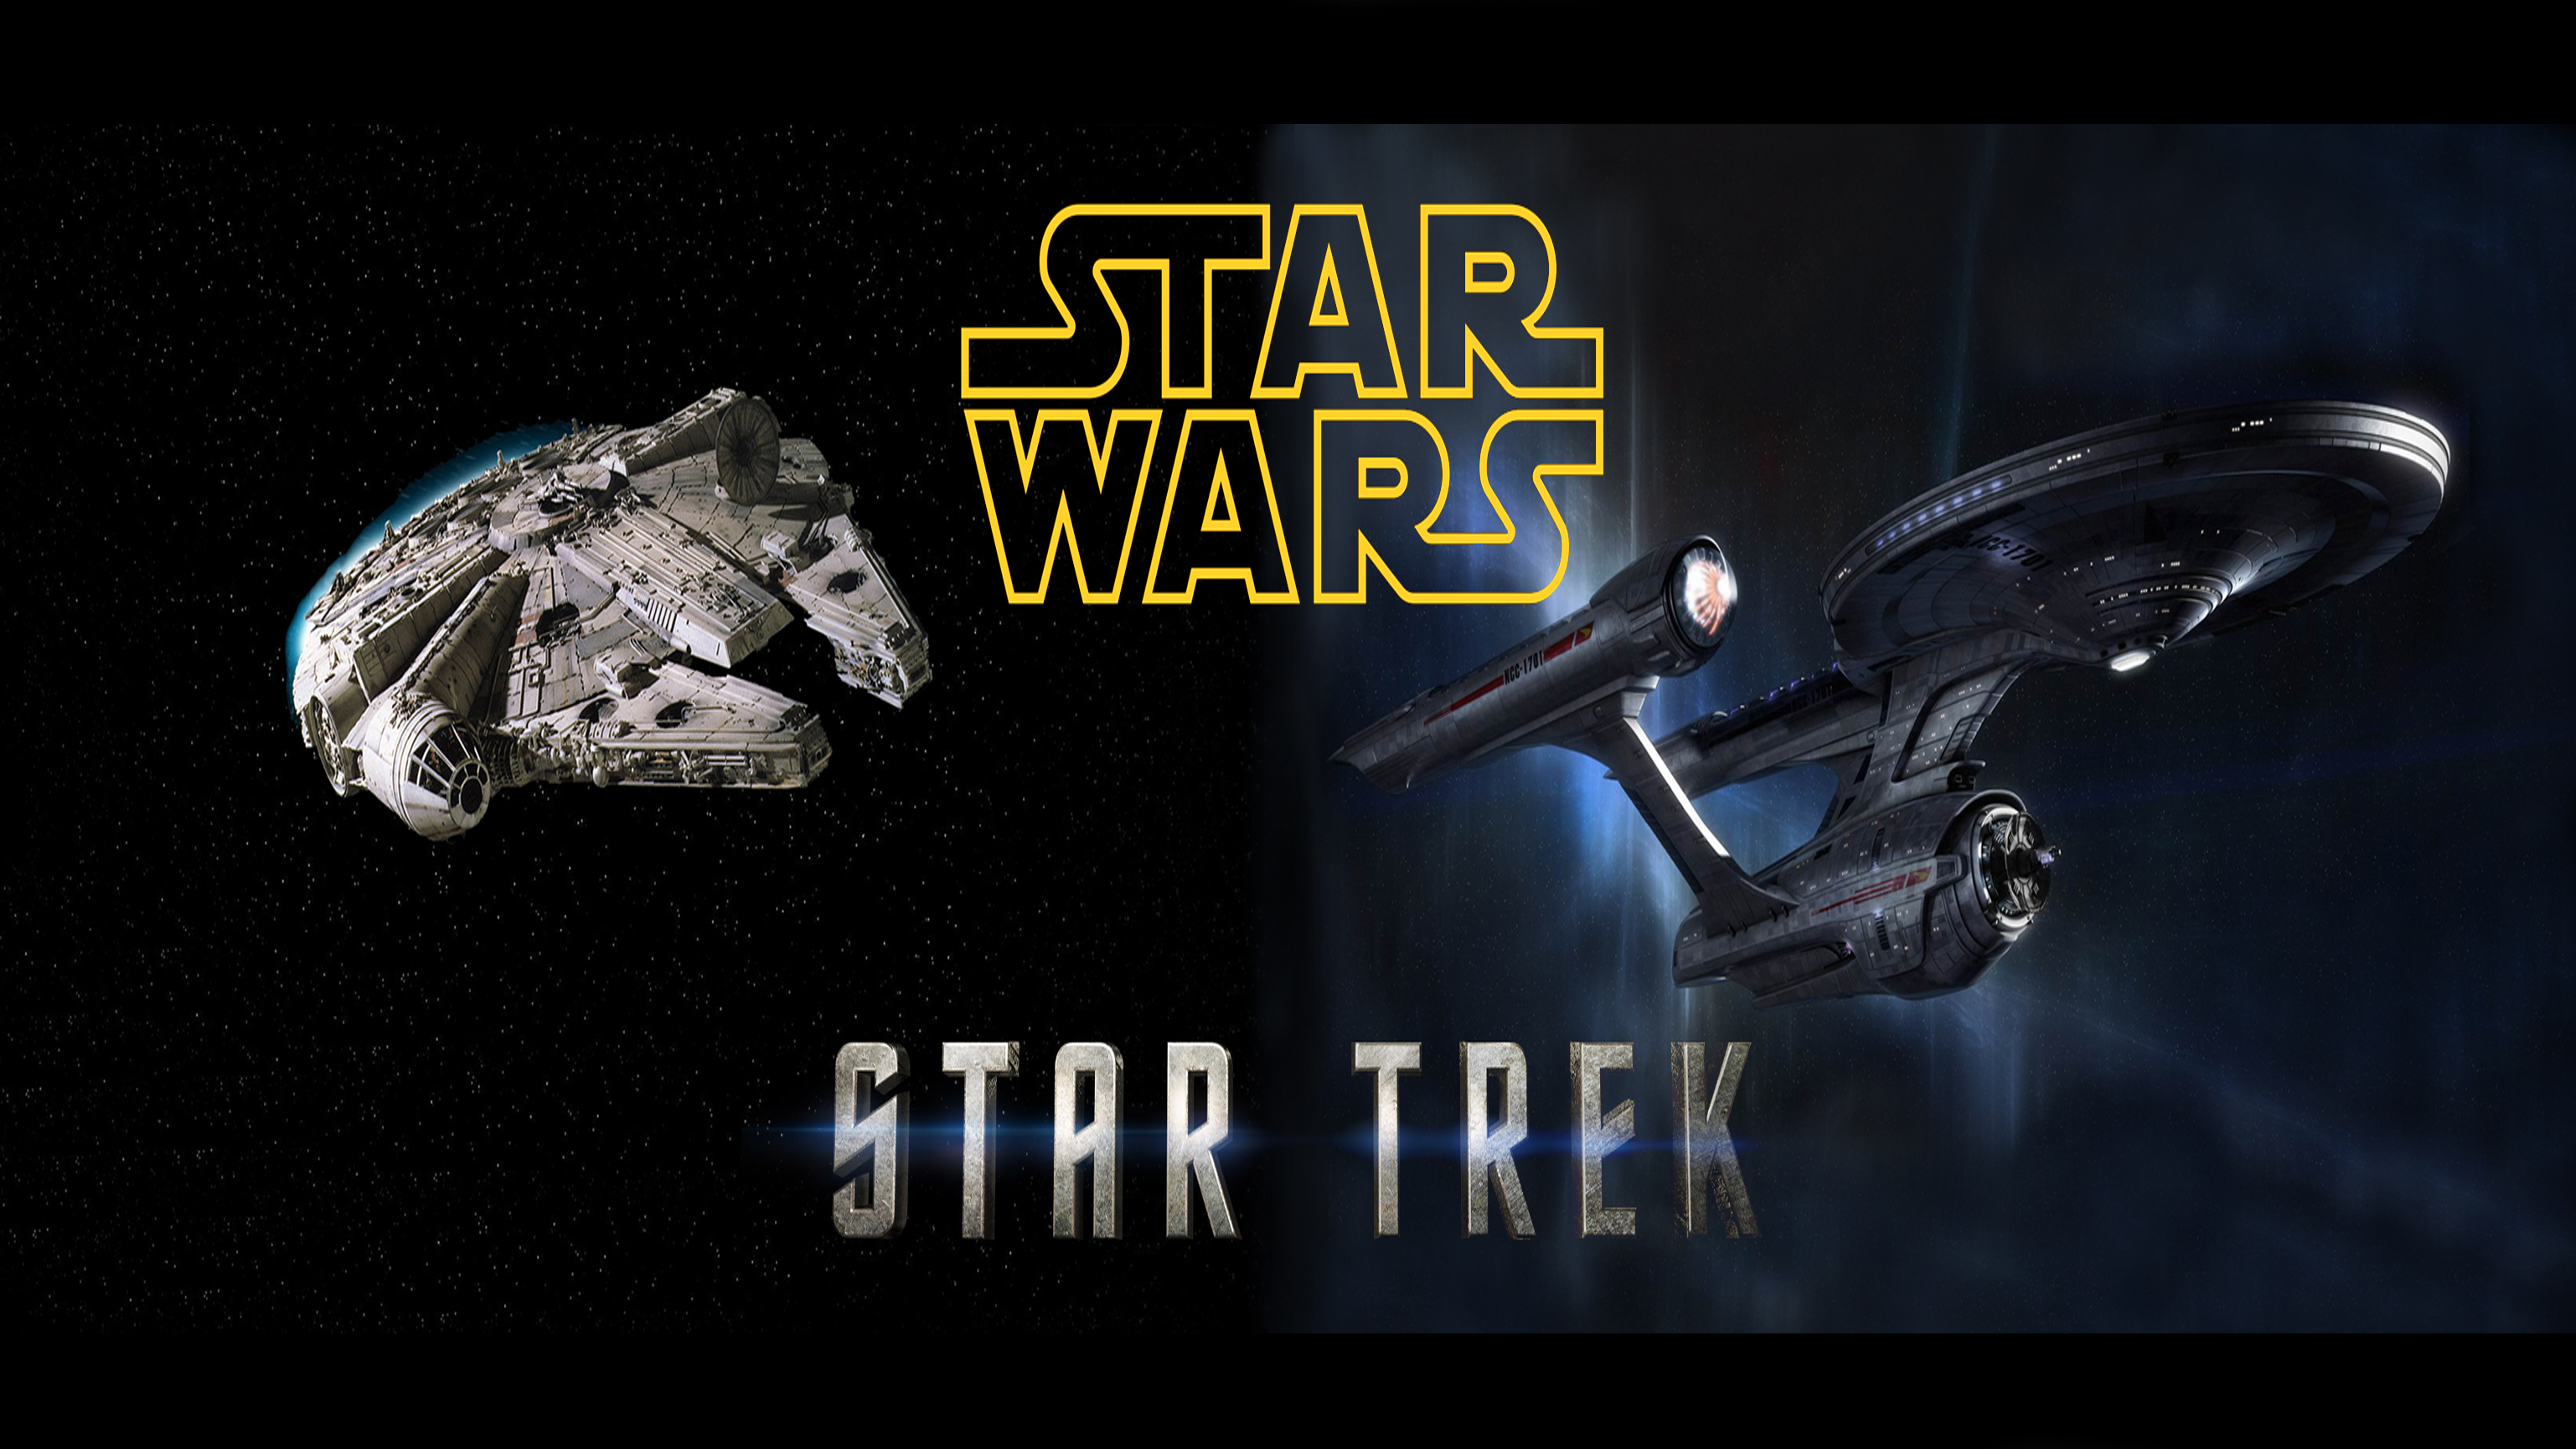 ¿Star Wars o Star Trek?